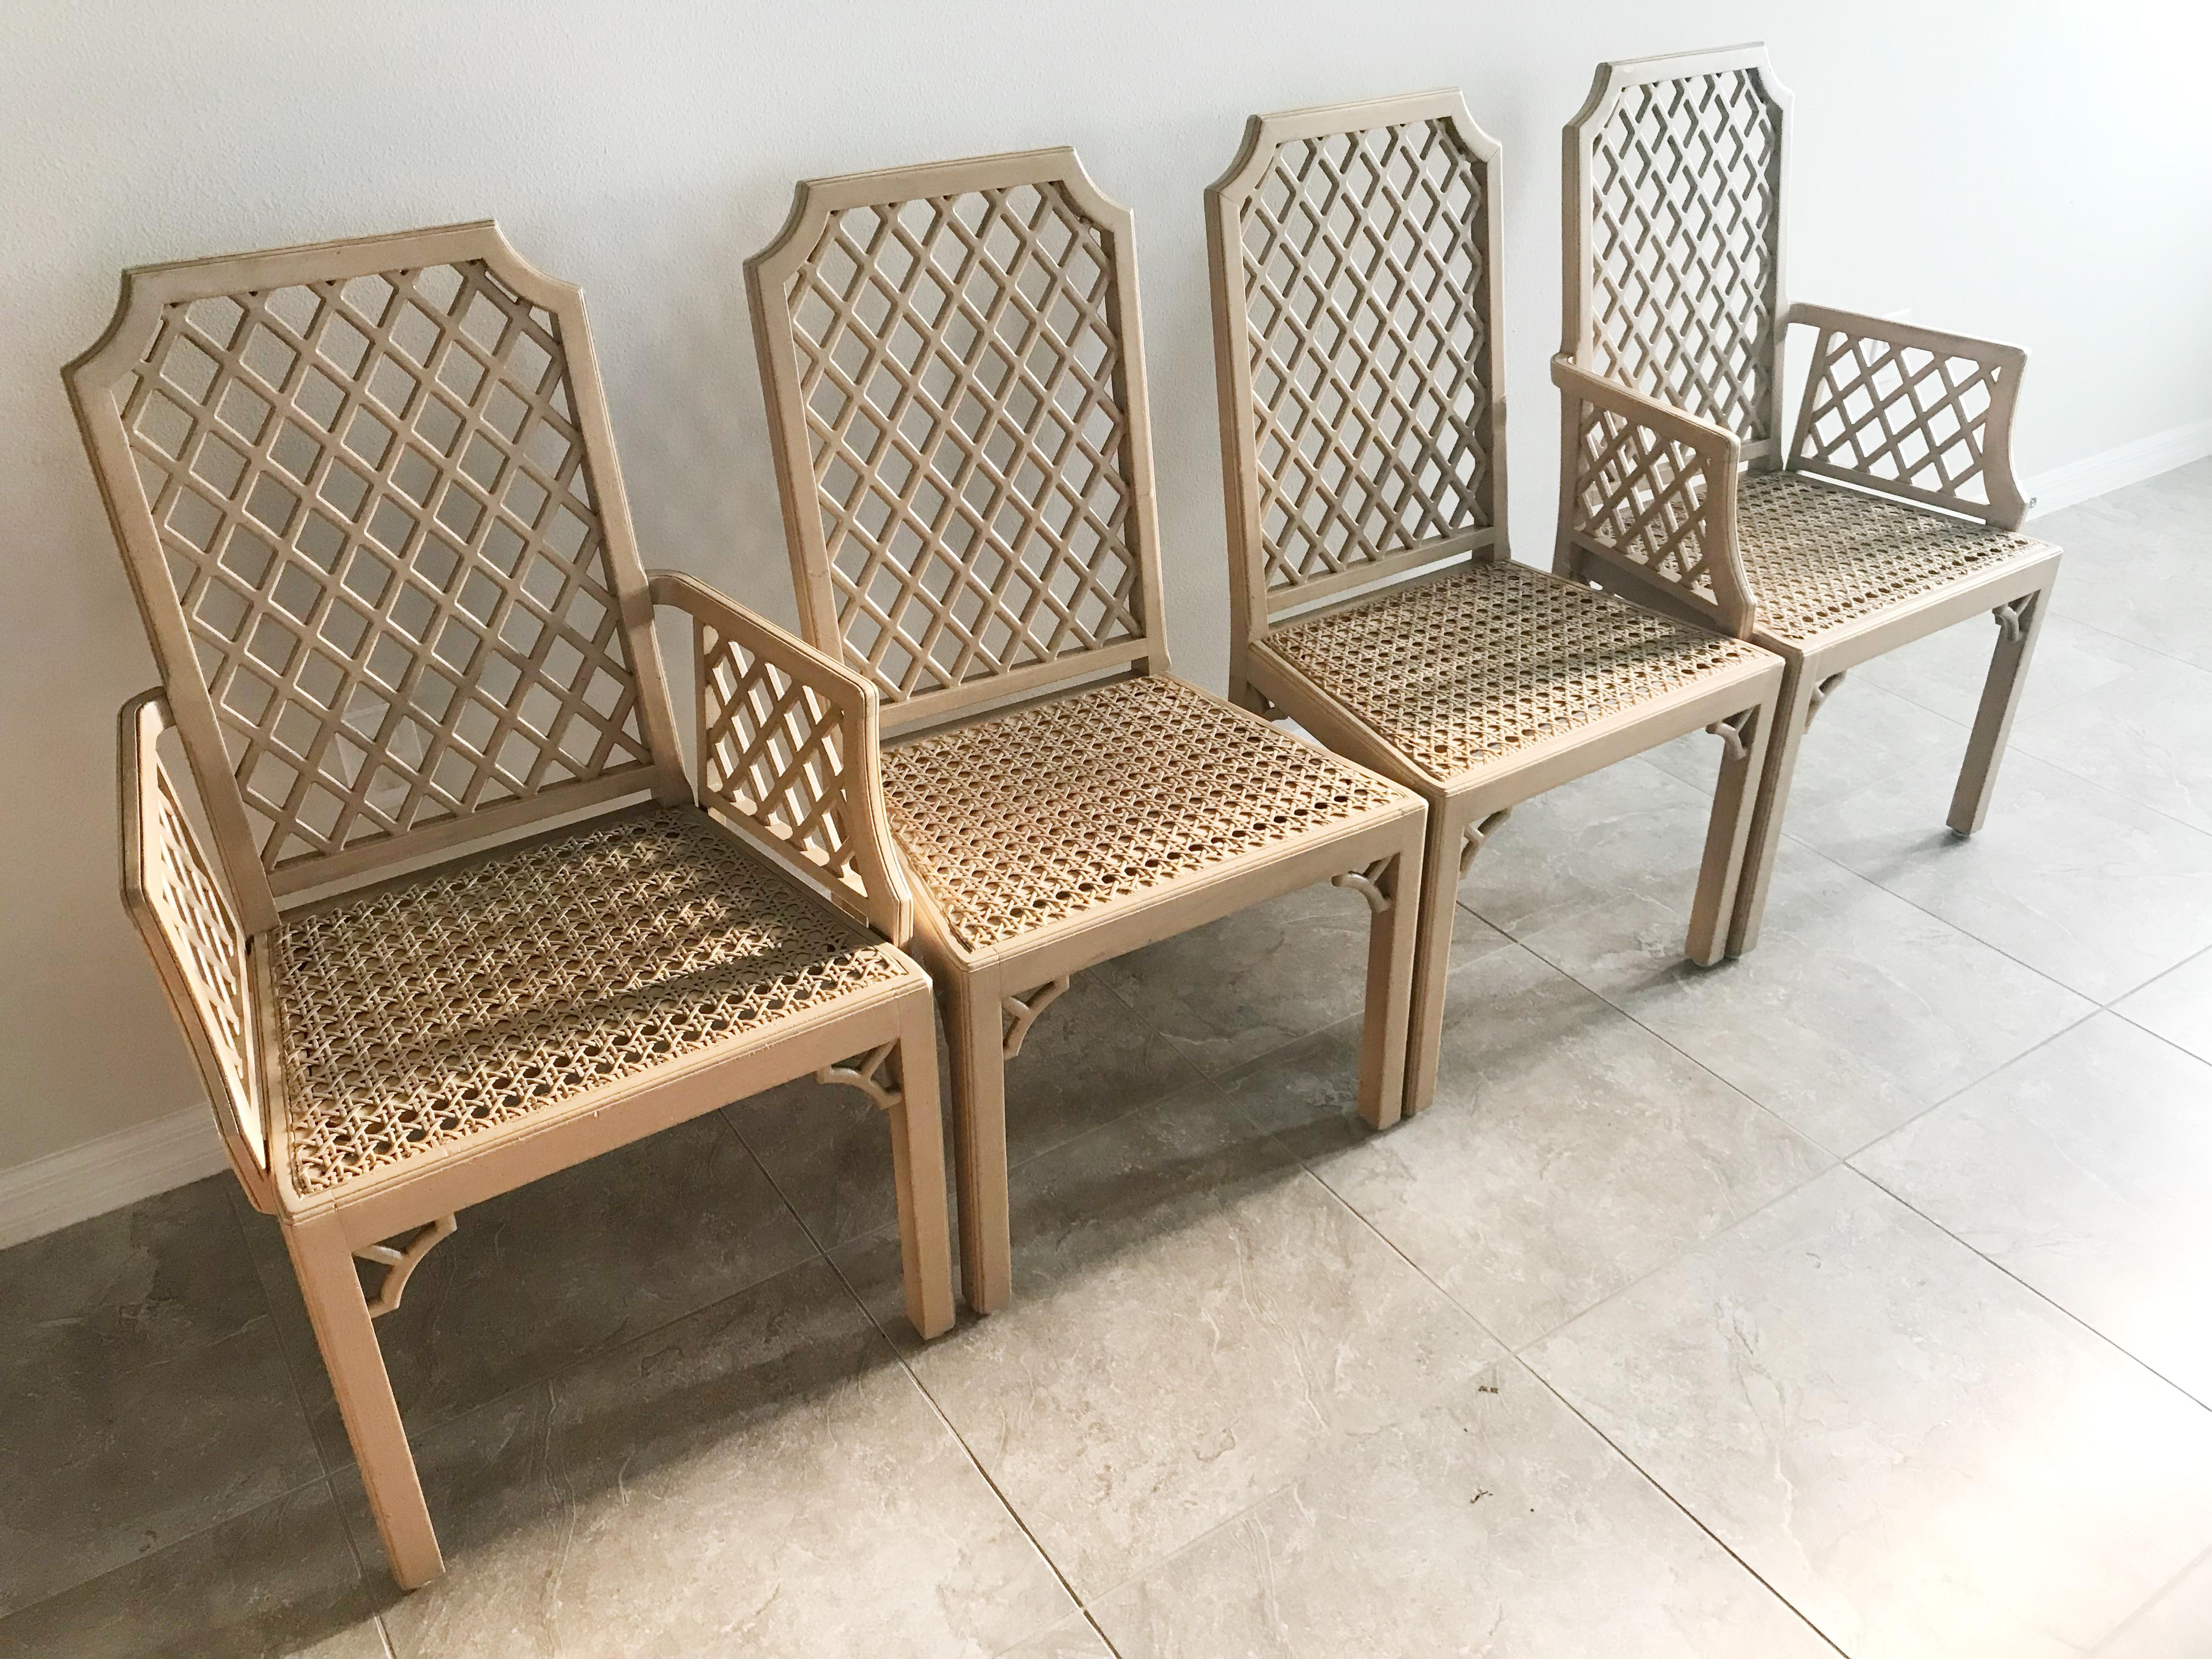 dining chairs with caning chair and half sleeper vintage lattice back fretwork details set of four seats